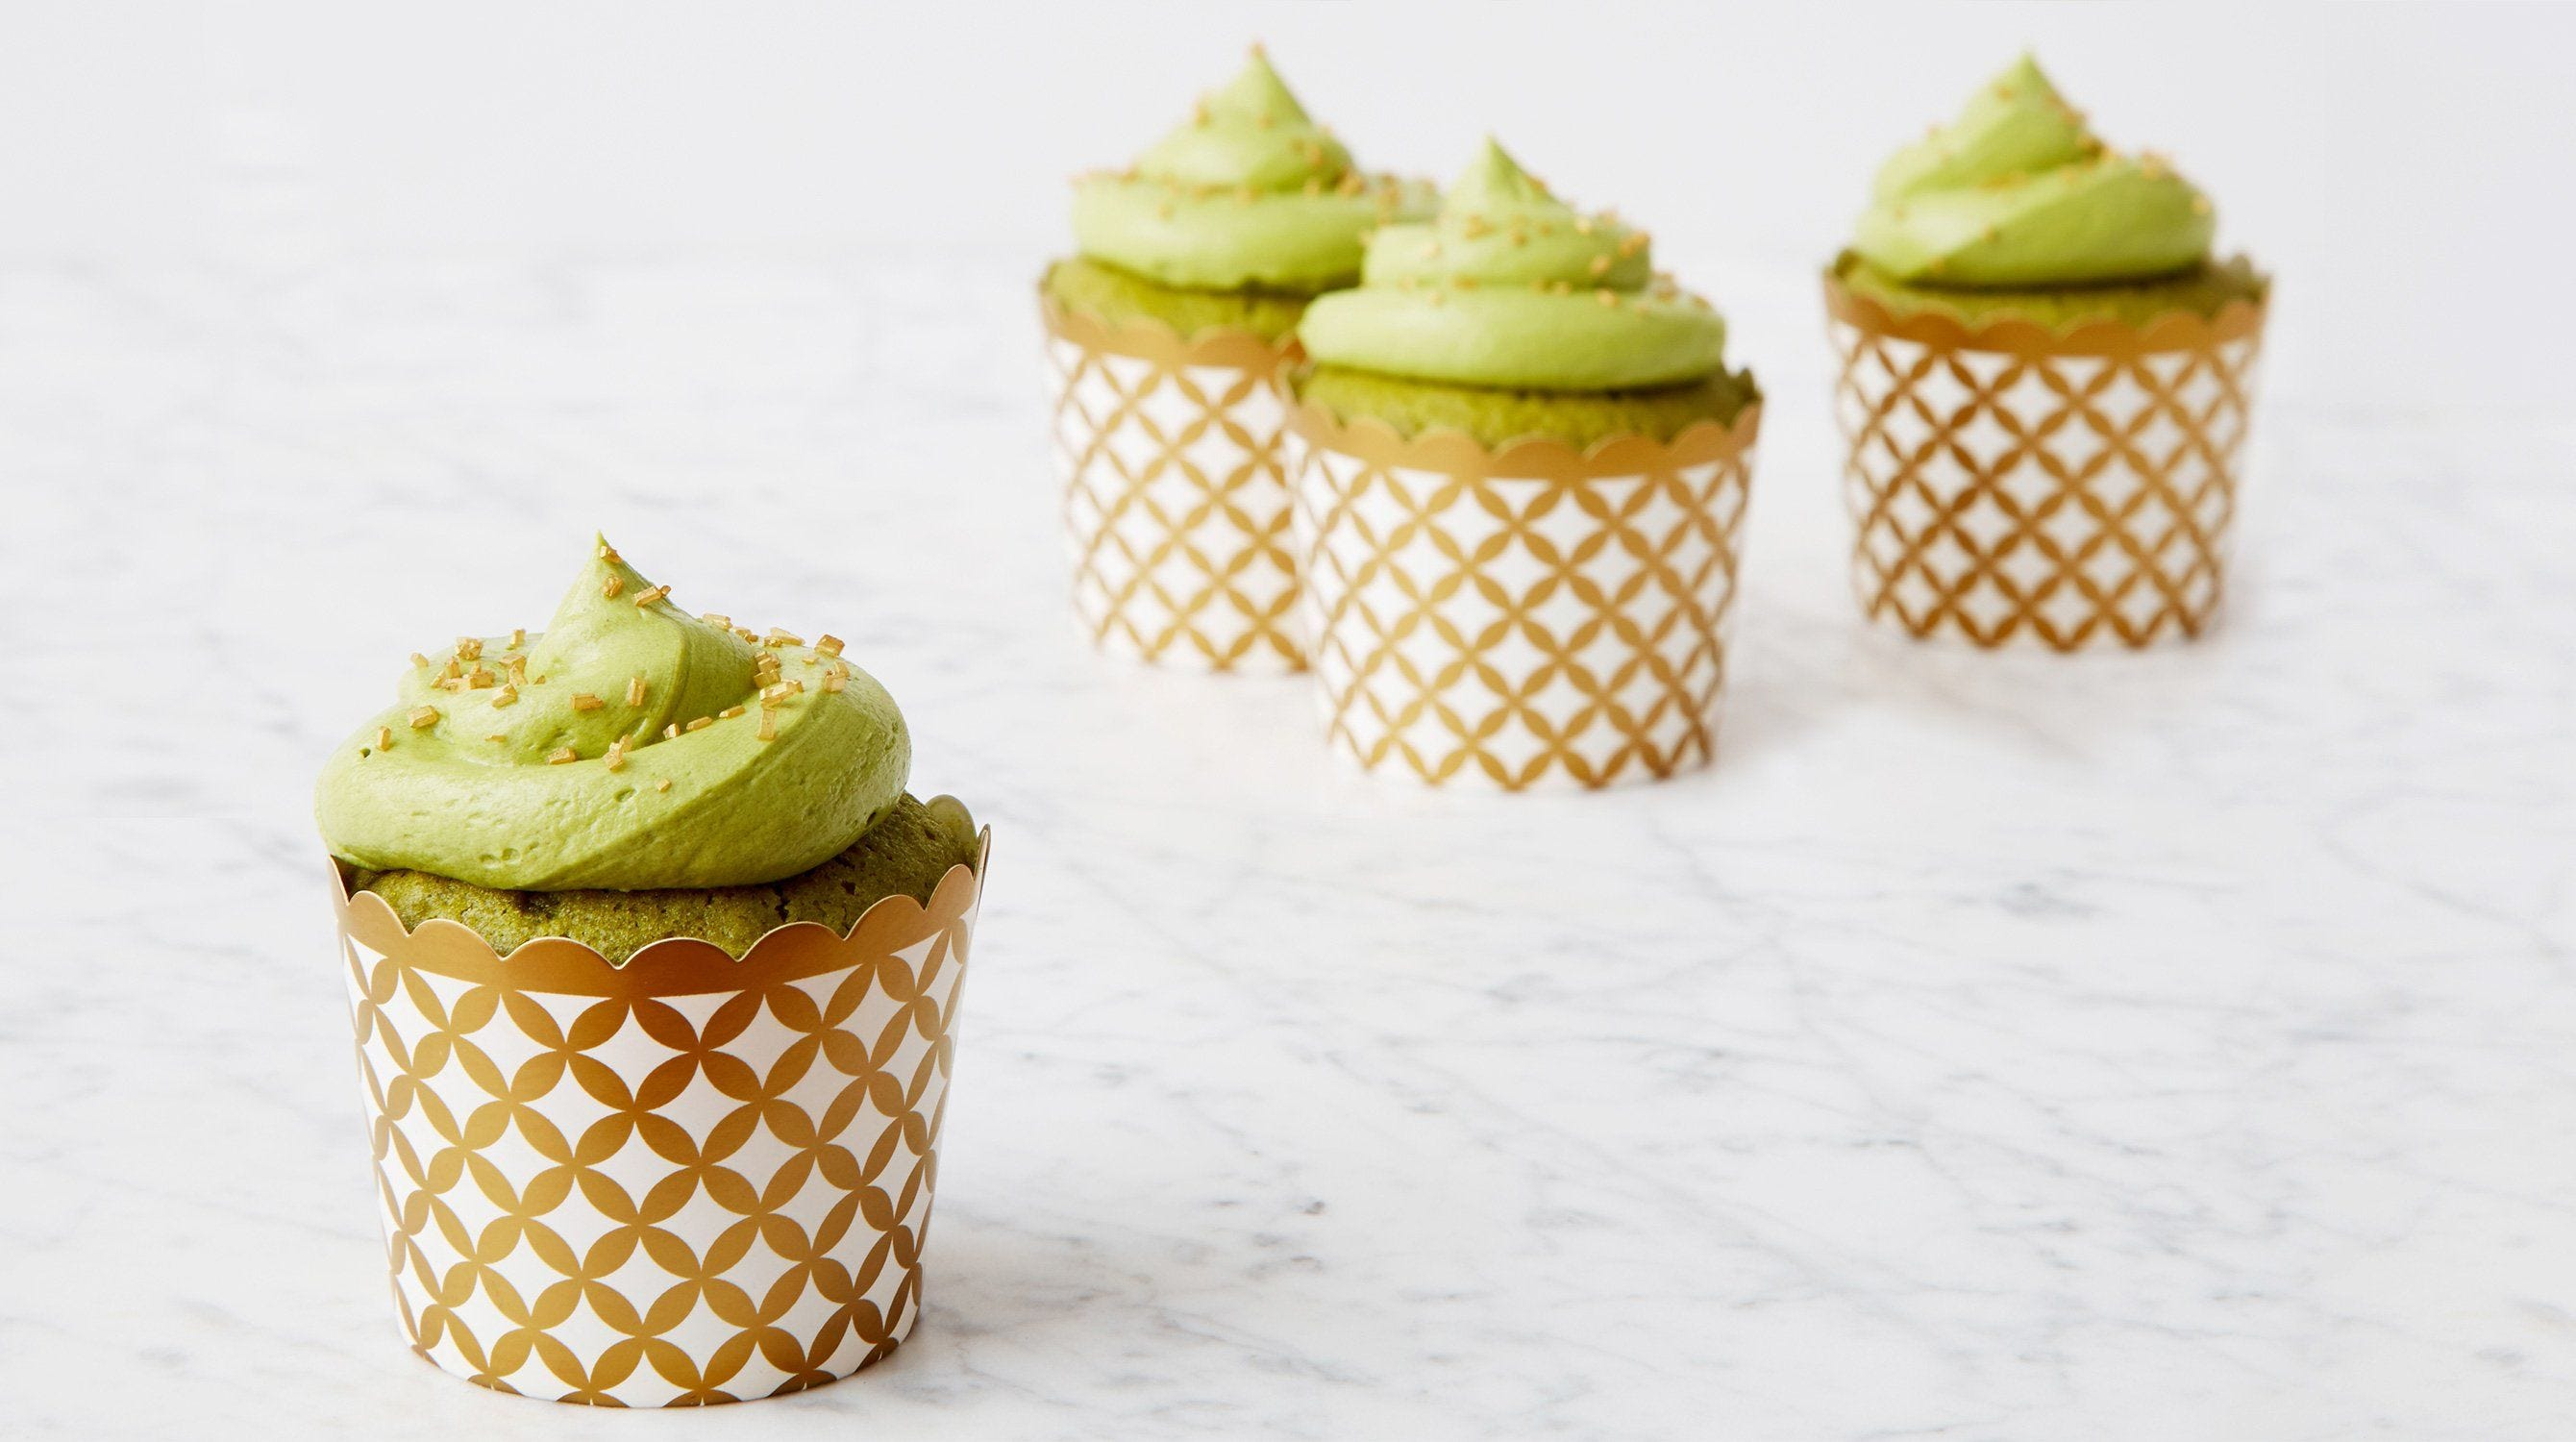 Green Tea Matcha Cupcakes with Gold Sprinkles recipe.